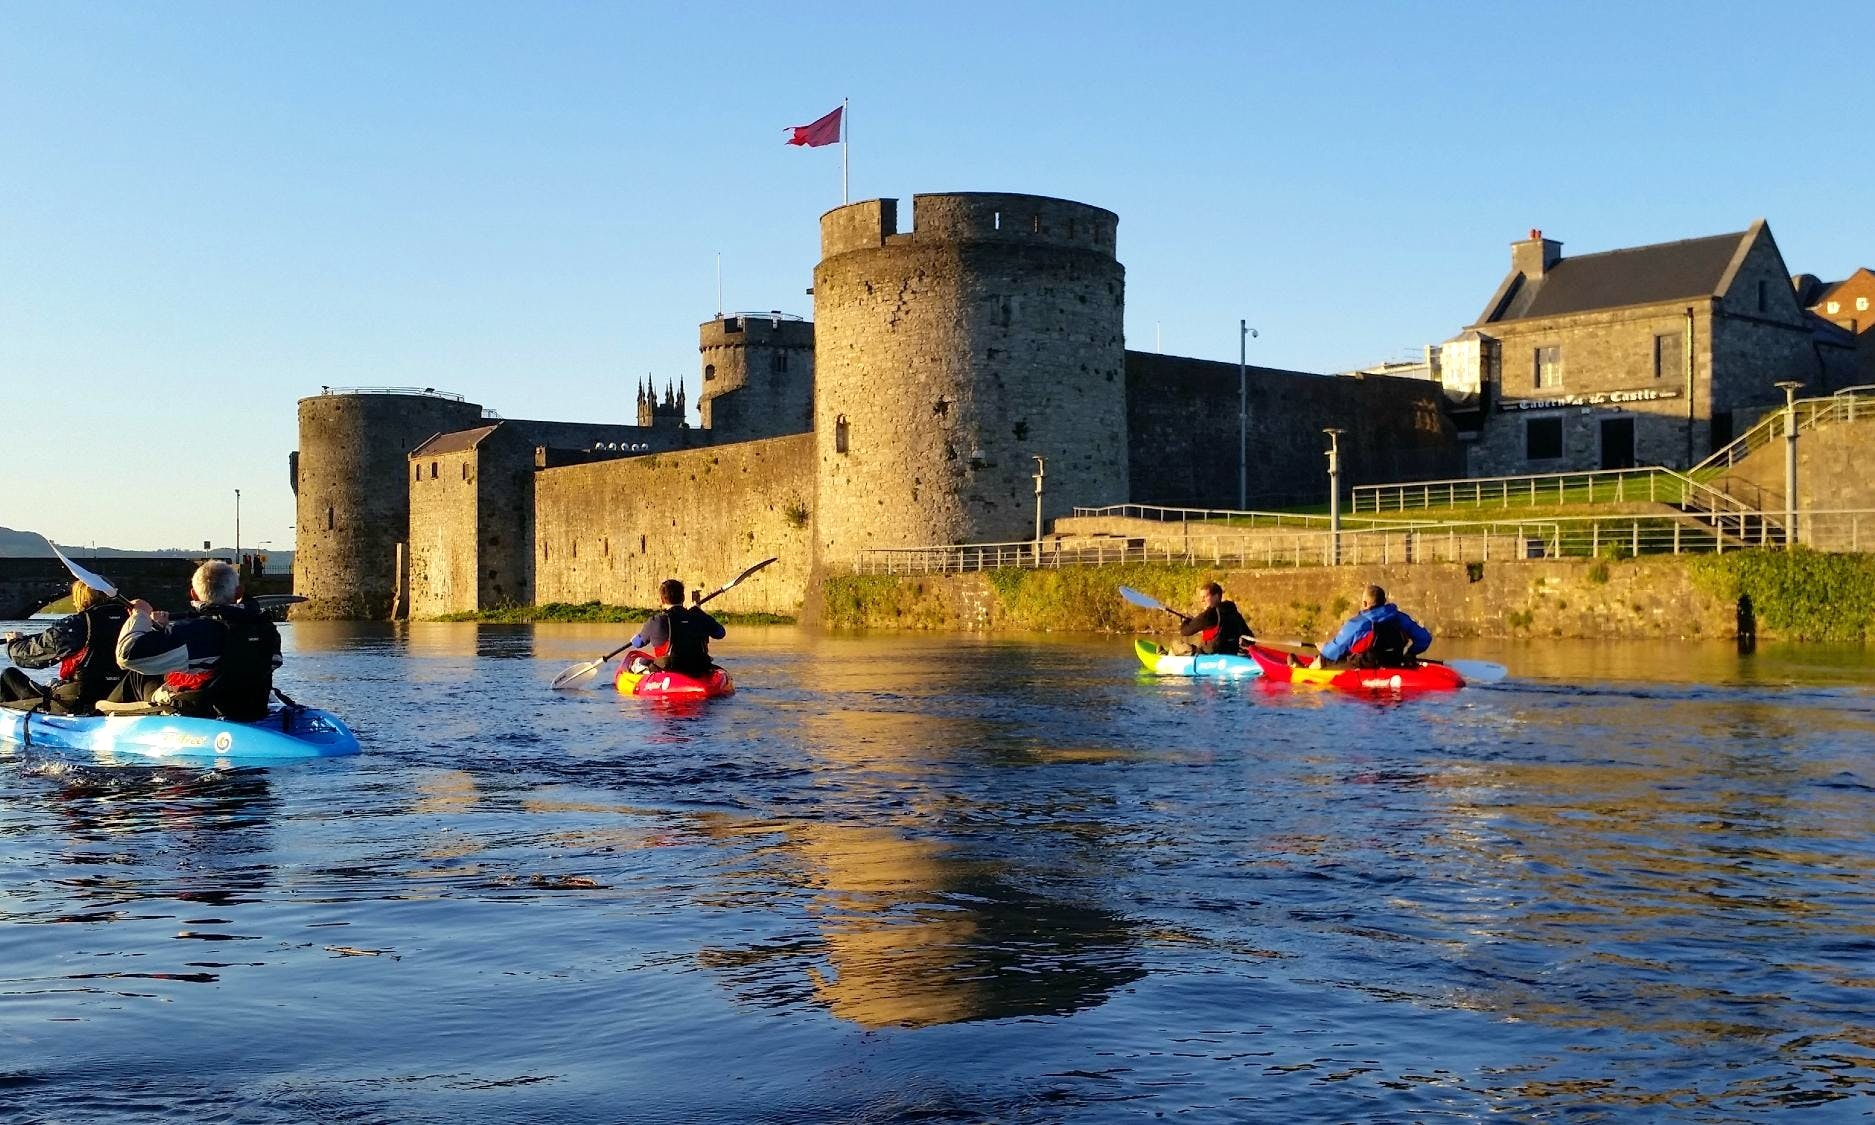 Kayak Rental, Lessons and Guided City Tours in Limerick, Ireland